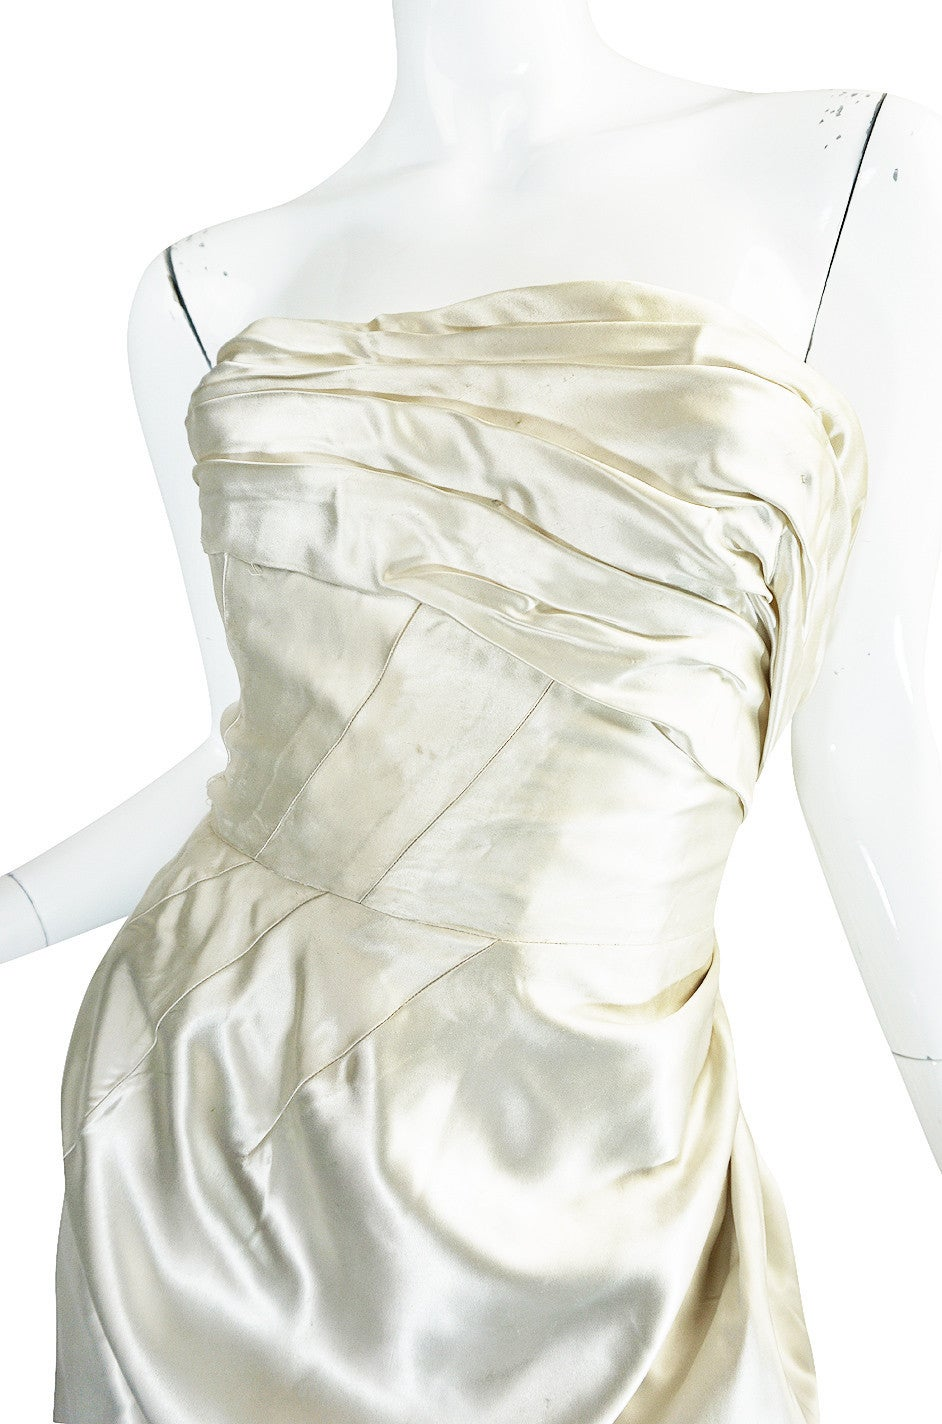 c1959 Maggy Rouf Haute Couture Champagne Silk Gown For Sale 3